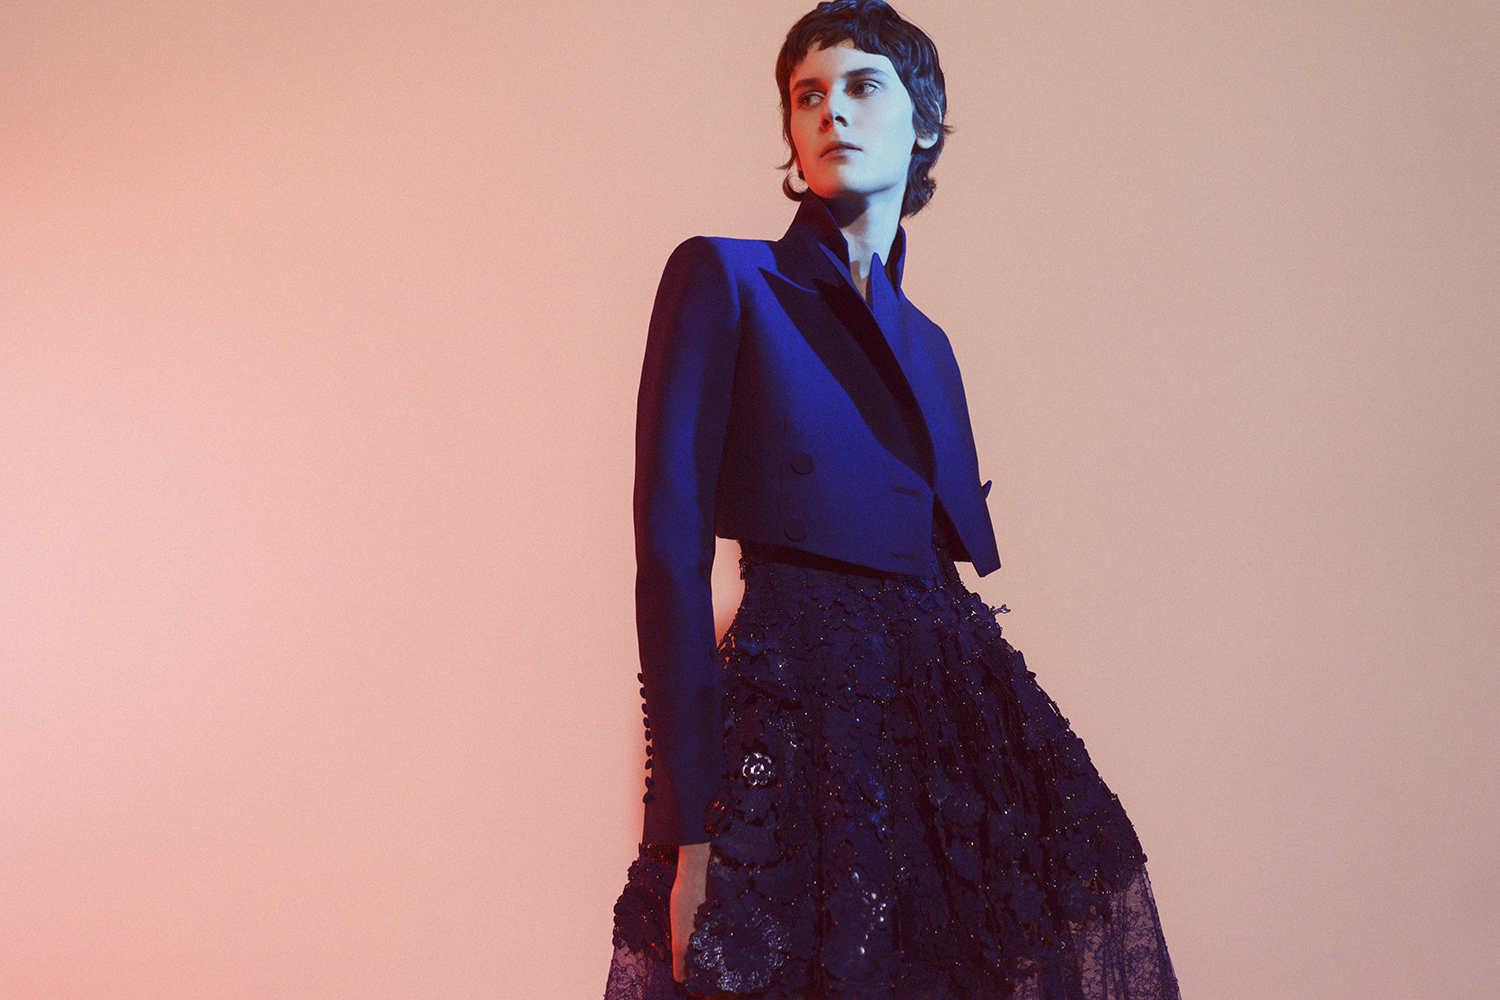 8 - Givenchy Haute Couture - Neil Krug.jpg